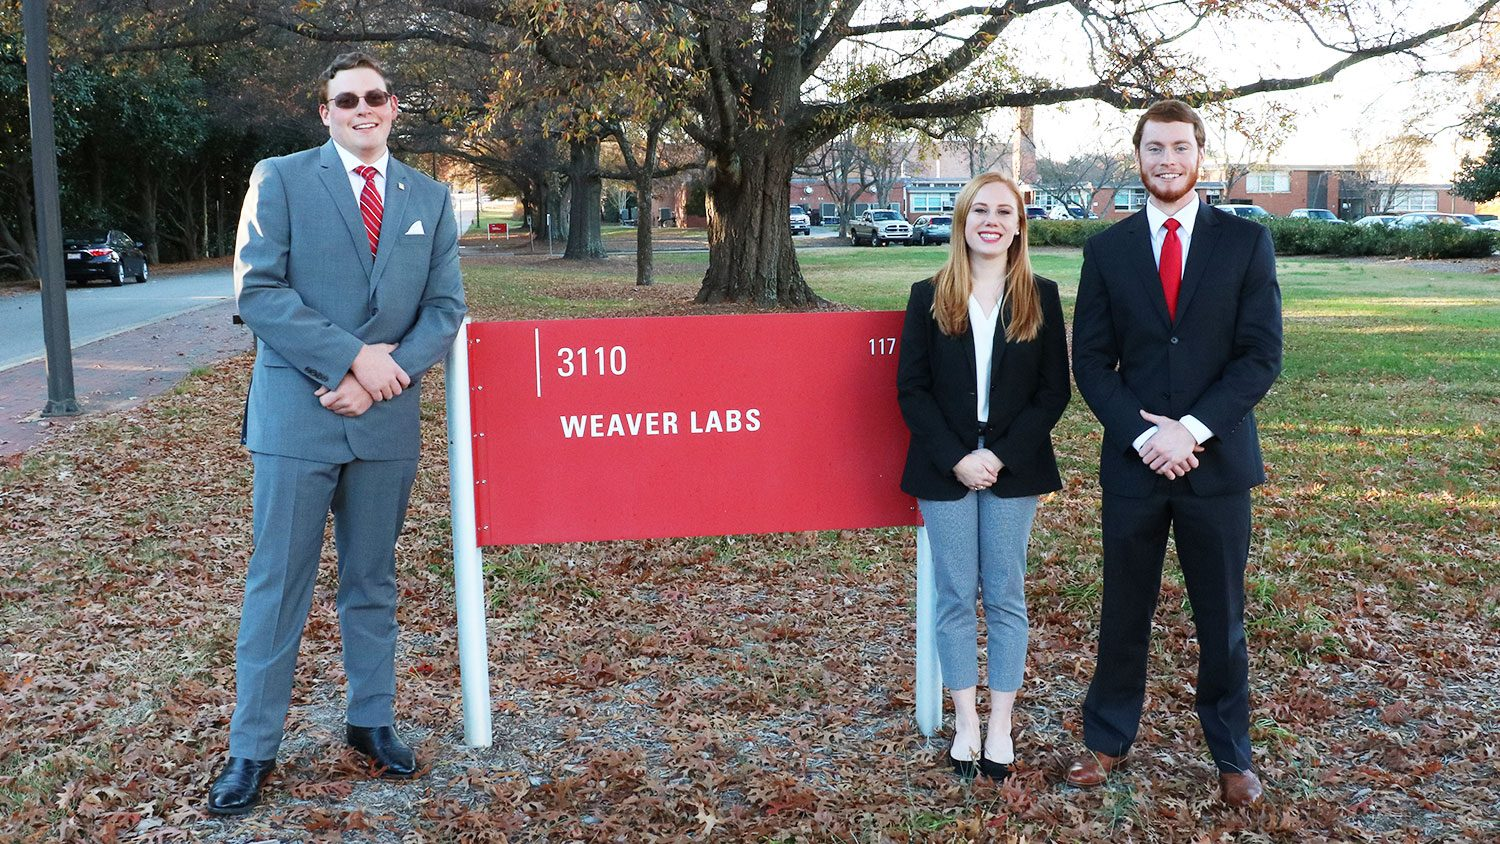 NC State students Matthew Parker, Lauryn Kabrich and Alex Greeson with the Weaver Labs sign.